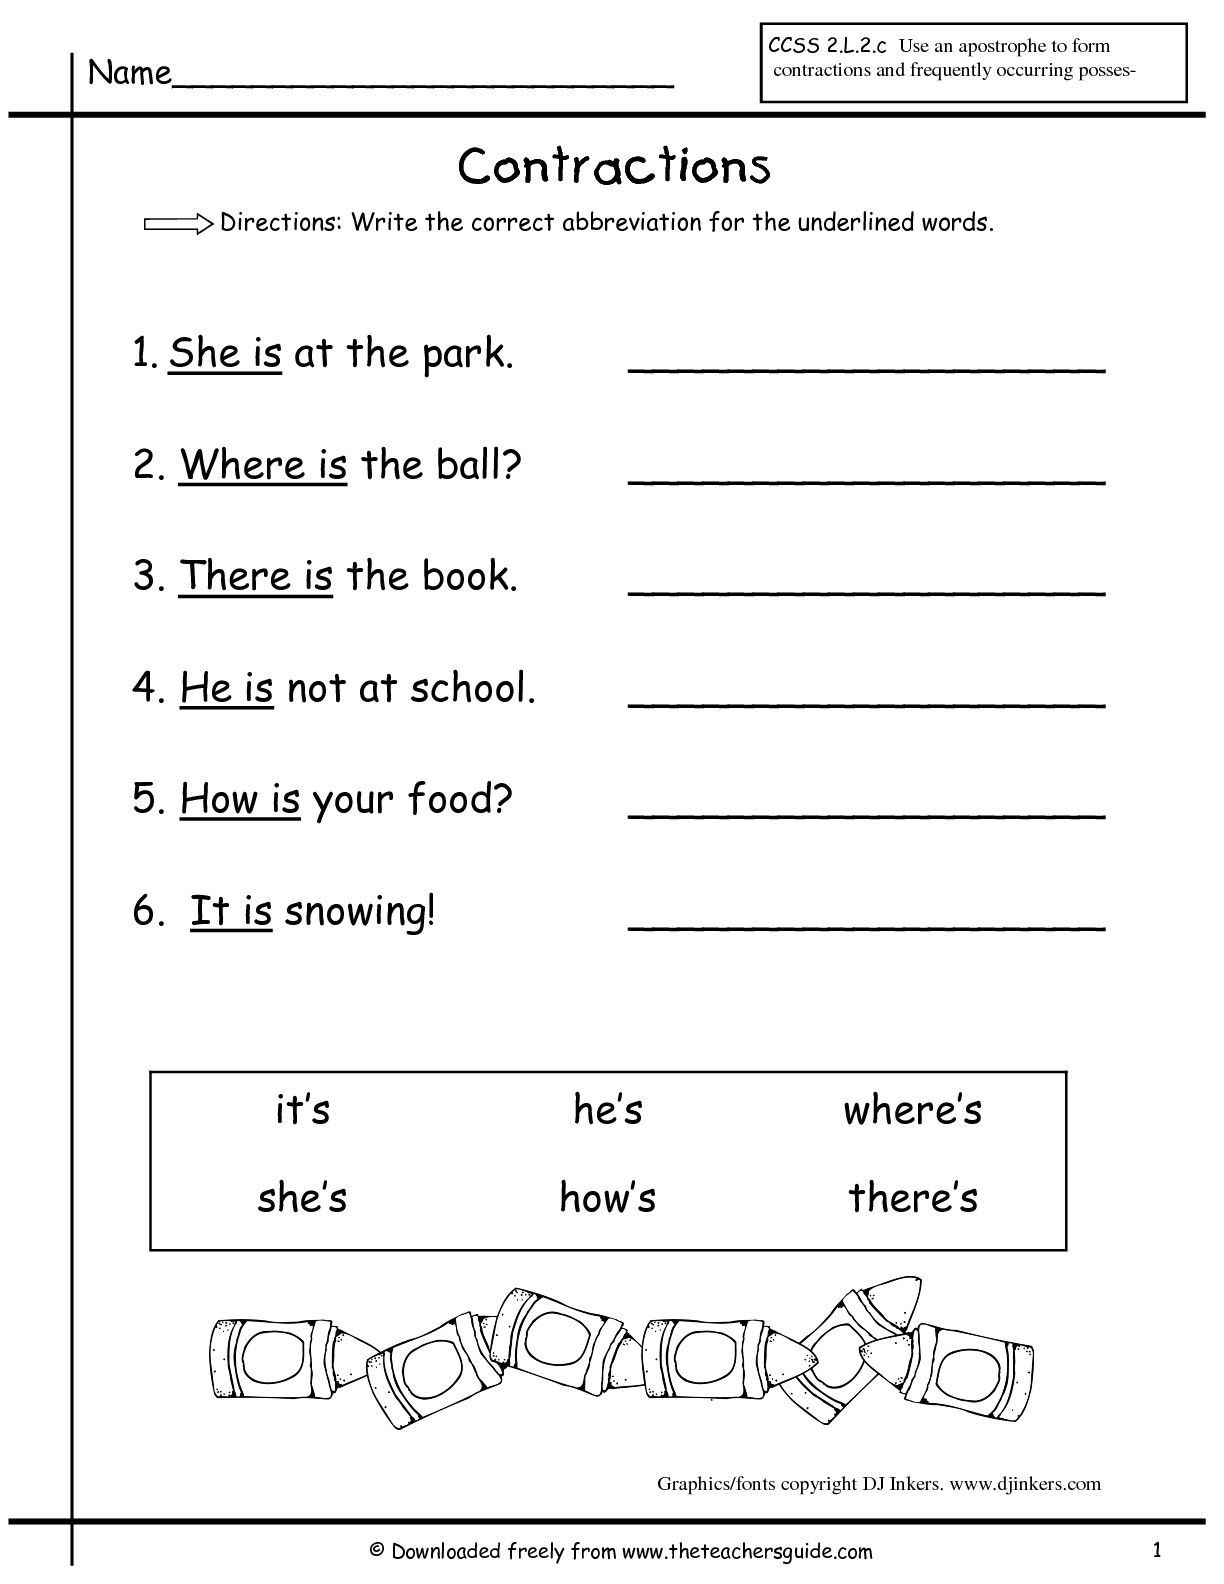 7th Grade Science Worksheets Printable Math Basketball Math Play Maximum Destruction Coloring Pages